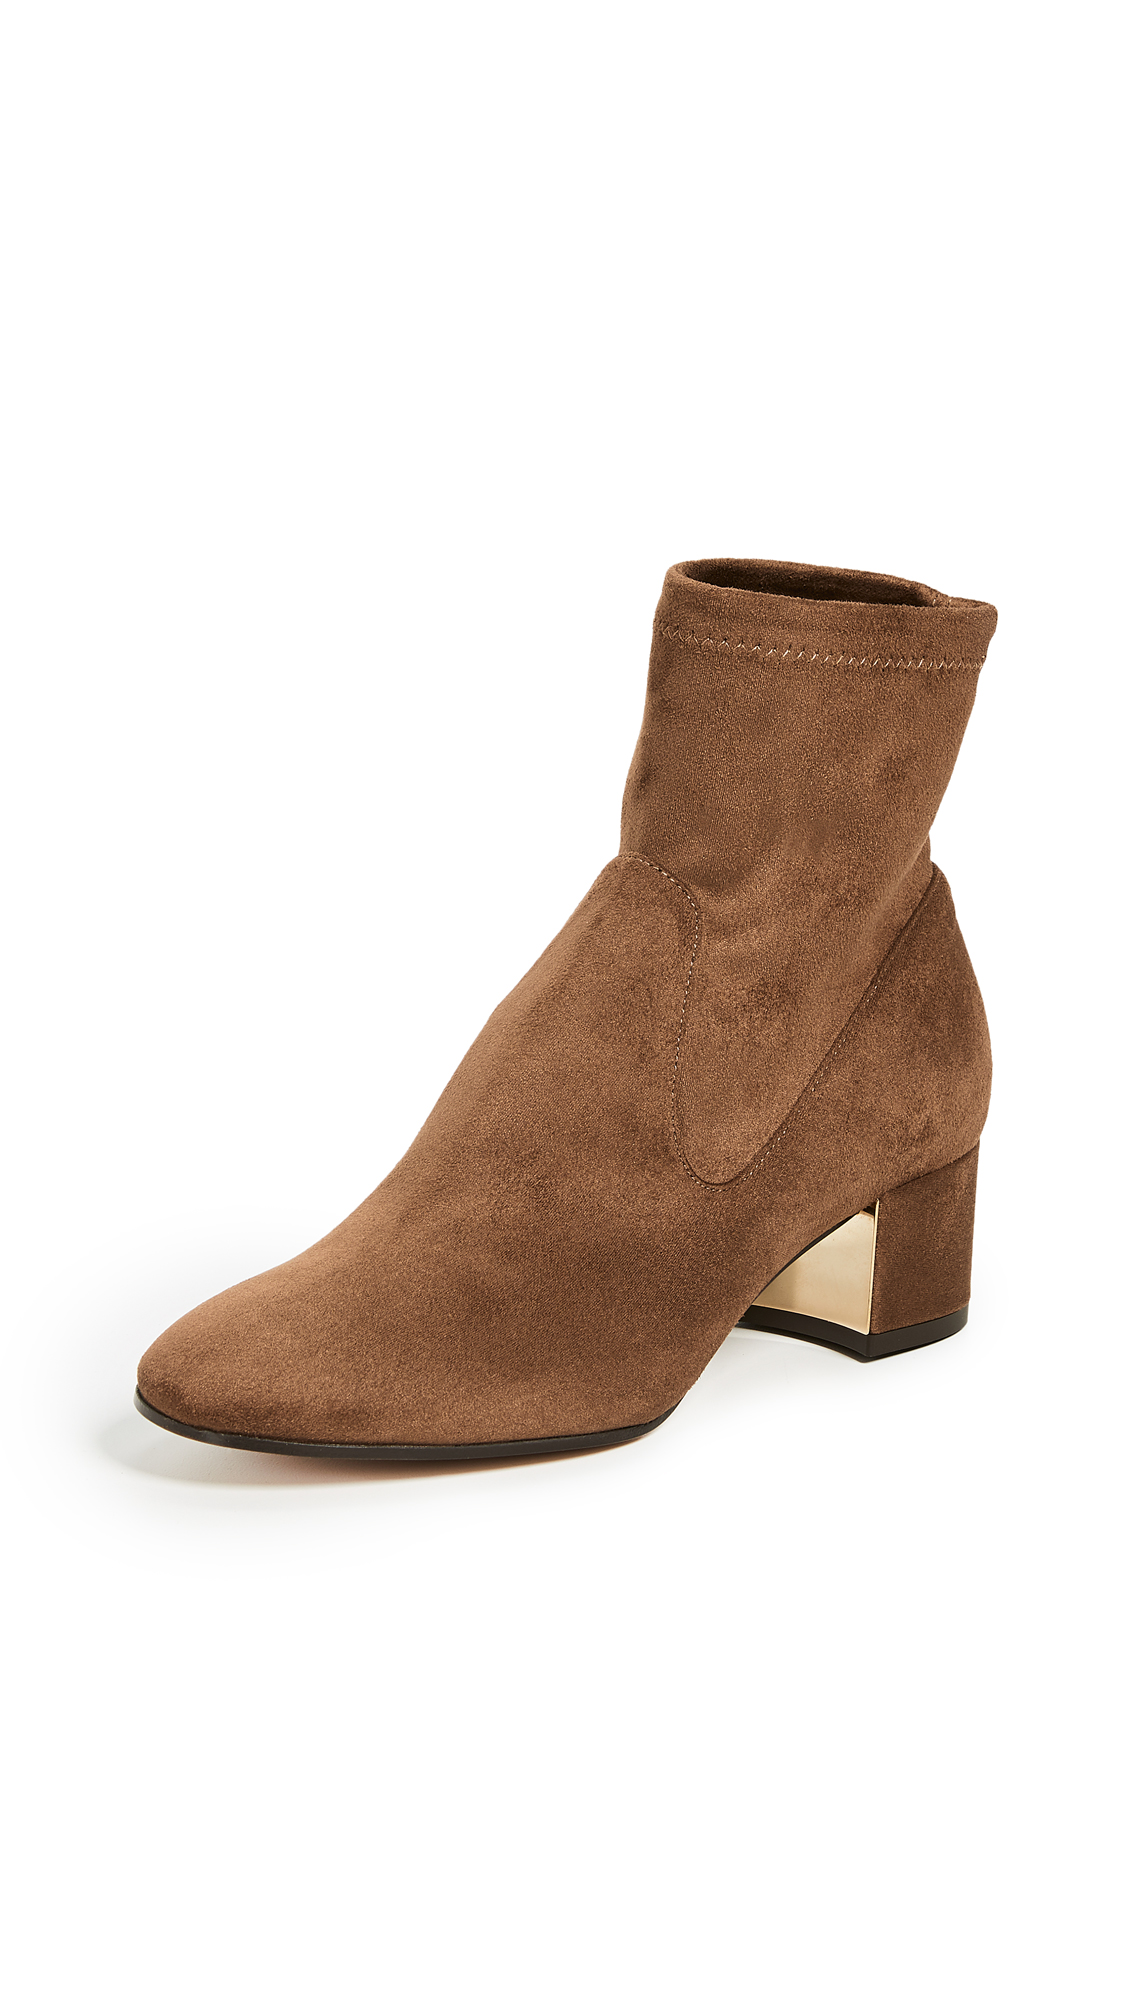 MARION PARKE Grace Block Heel Ankle Boots in Luggage